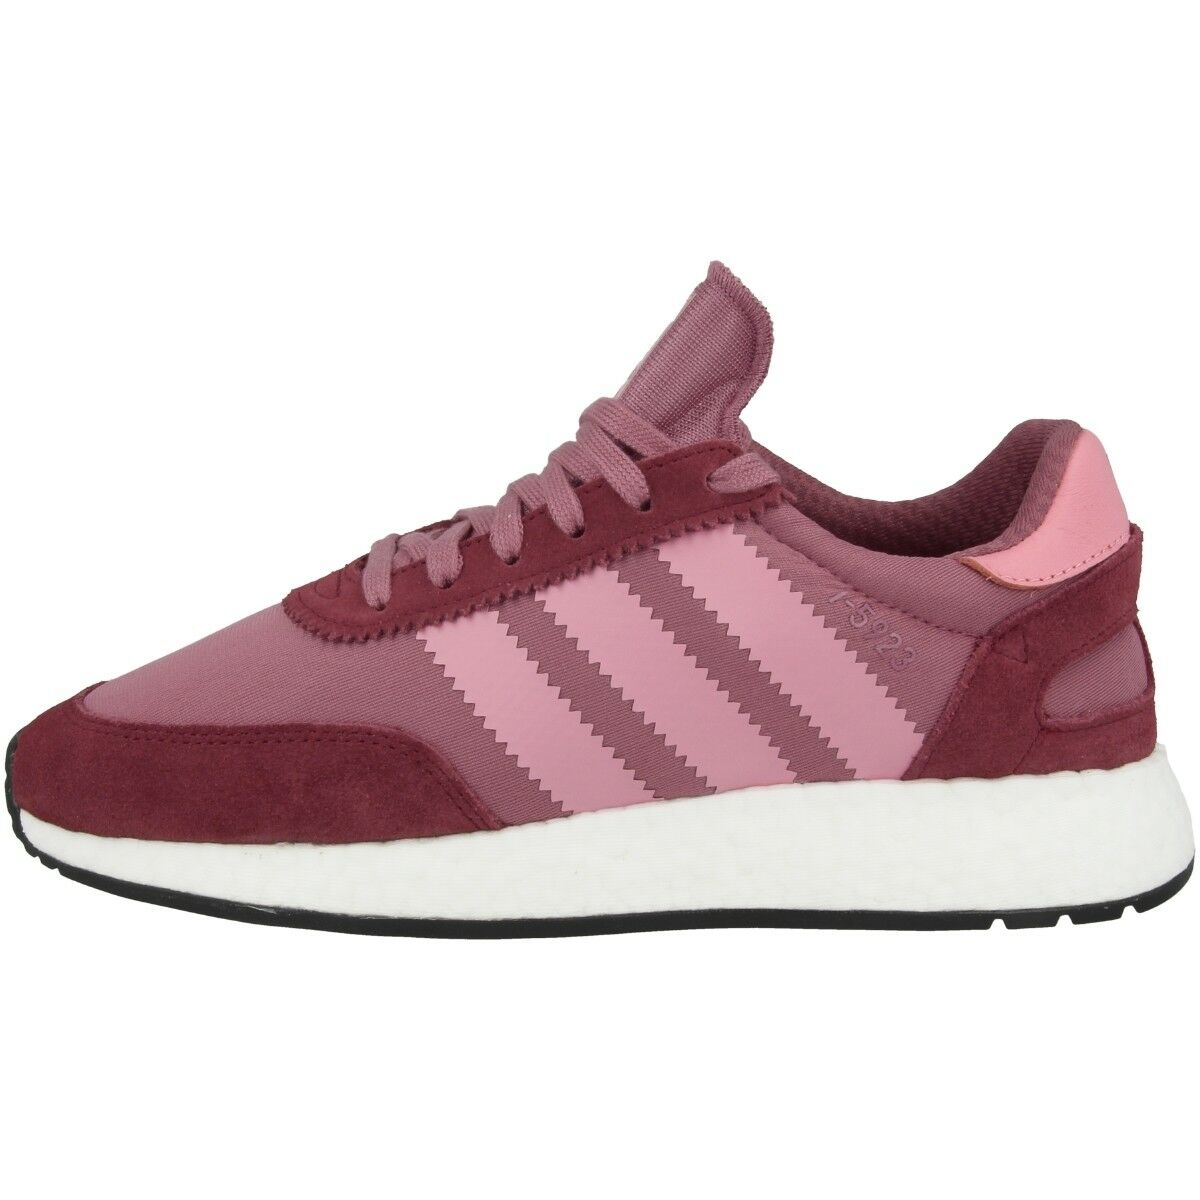 Adidas I-5923 Women shoes Women's Originals Leisure Trainers D97352